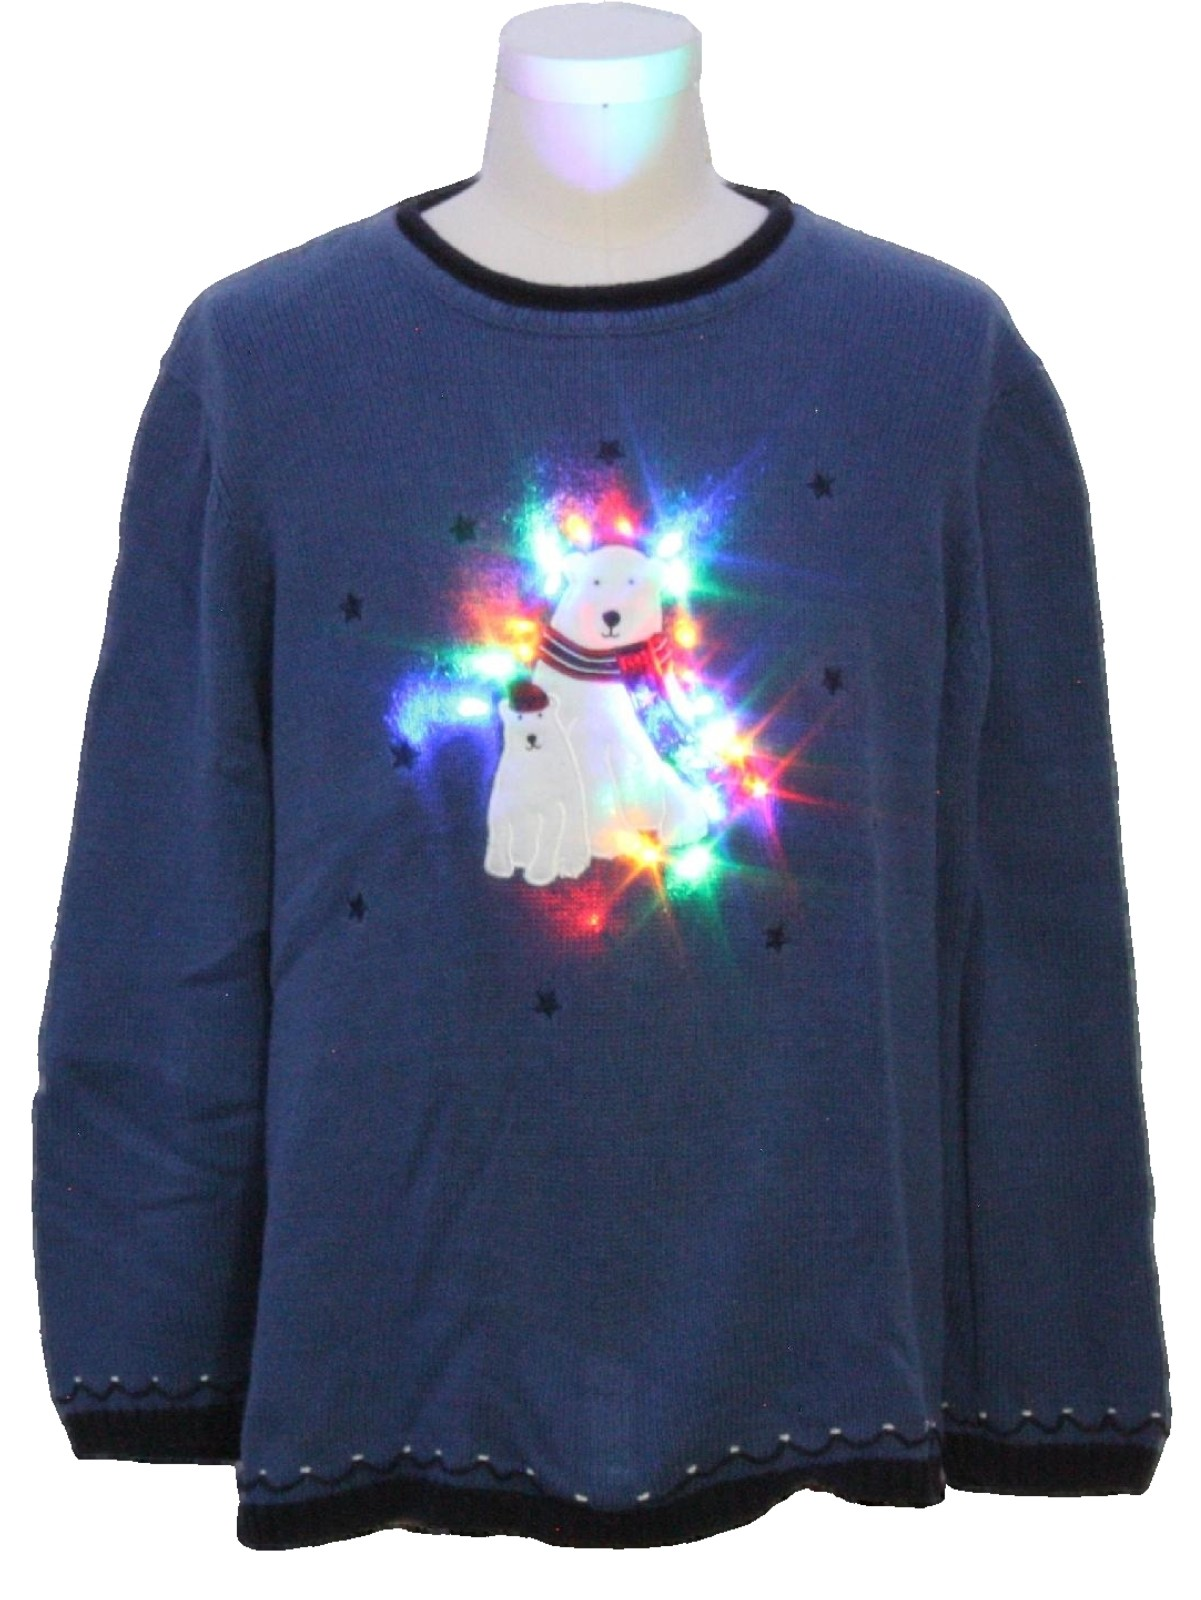 light up super bright multicolor solid lit lights ugly christmas sweater charter club unisex royal blue red green and white background cotton ramie